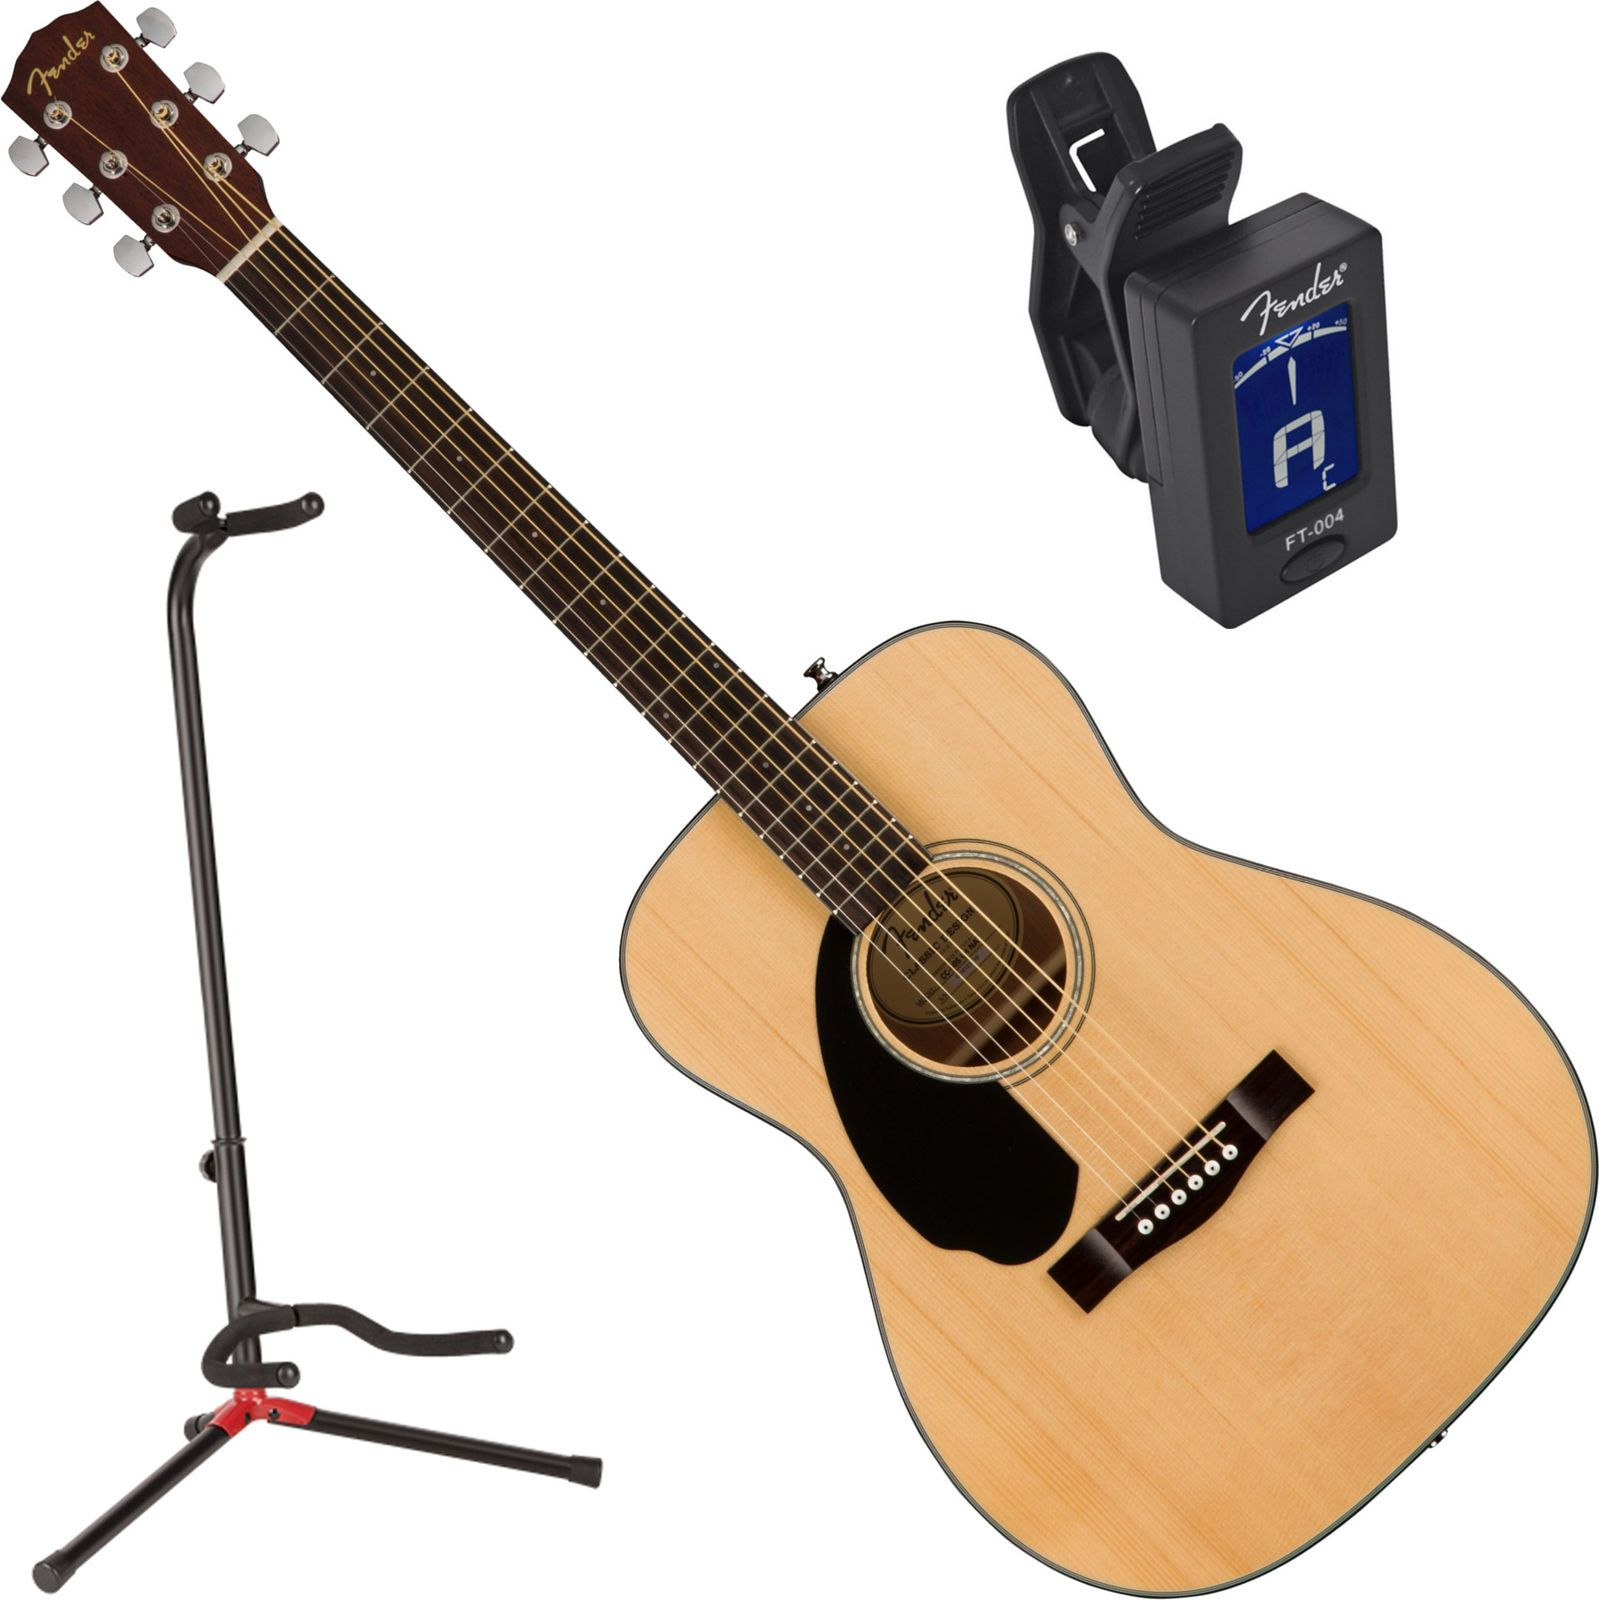 Fender Cc 60s Left Hand Natural Solid Top Concert Acoustic Guitar W Stand Common Shopping Acoustic Guitar Guitar Acoustic